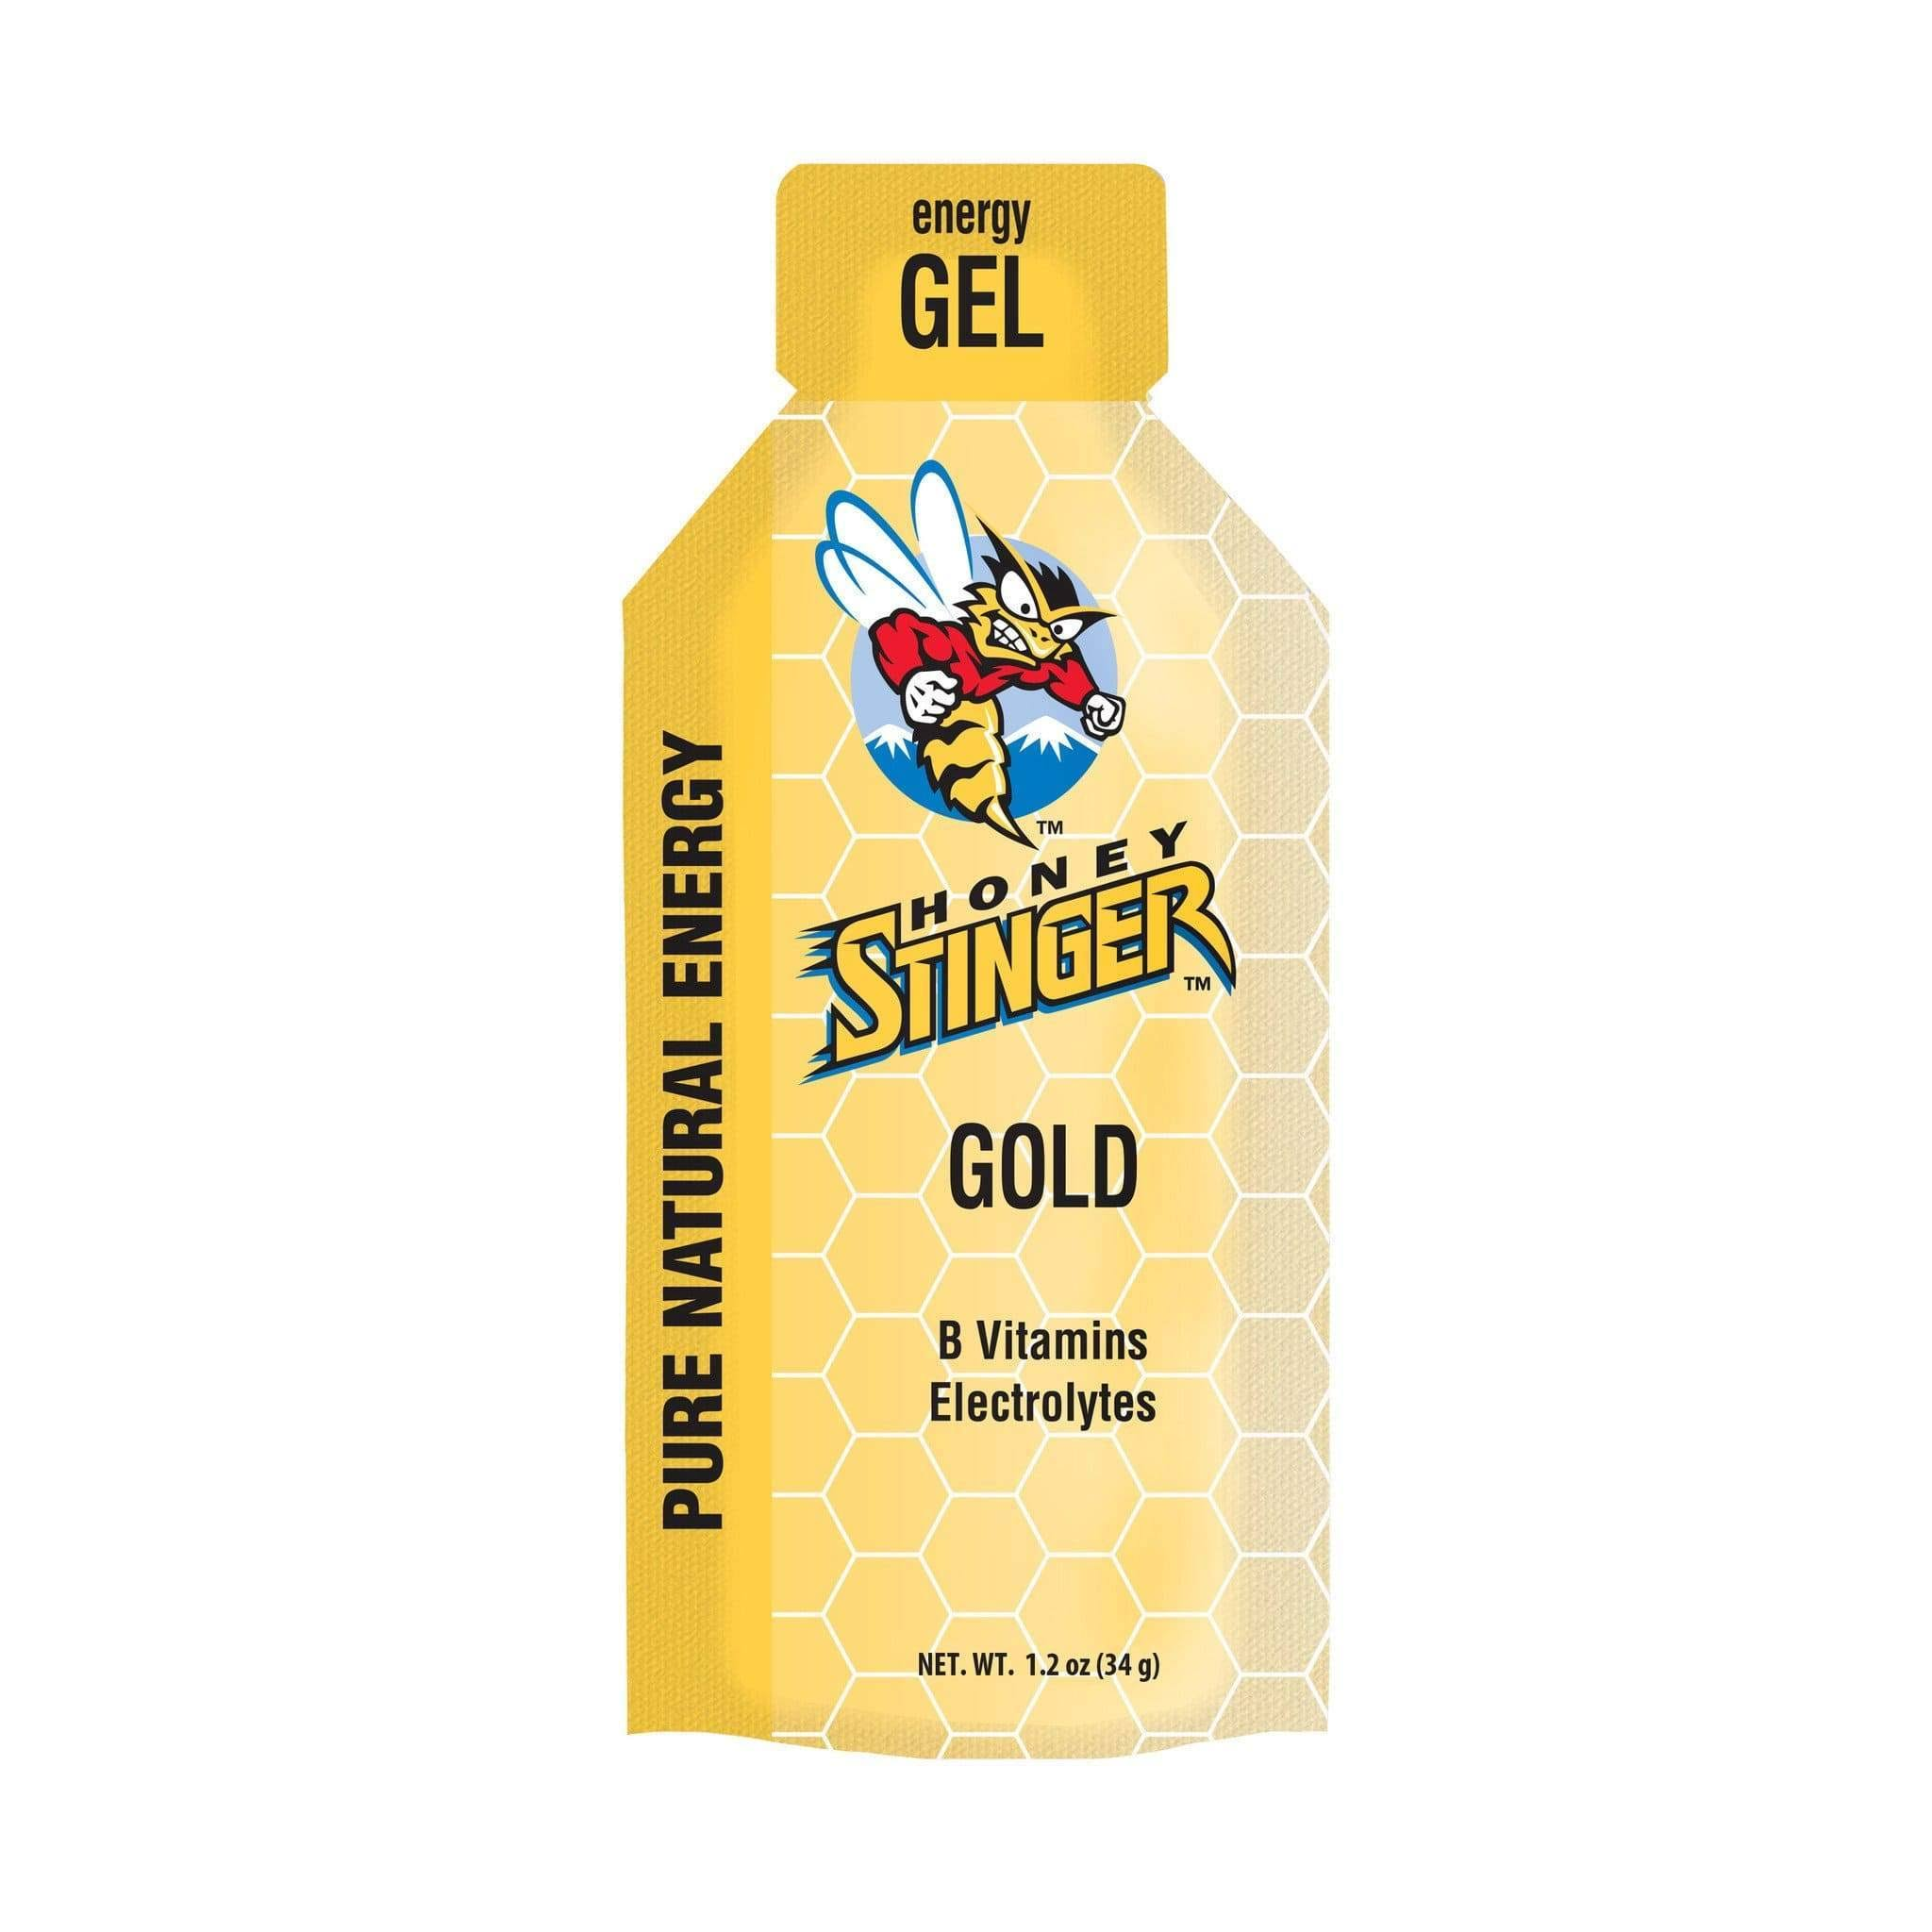 Honey Stinger Energy Gel - Gold